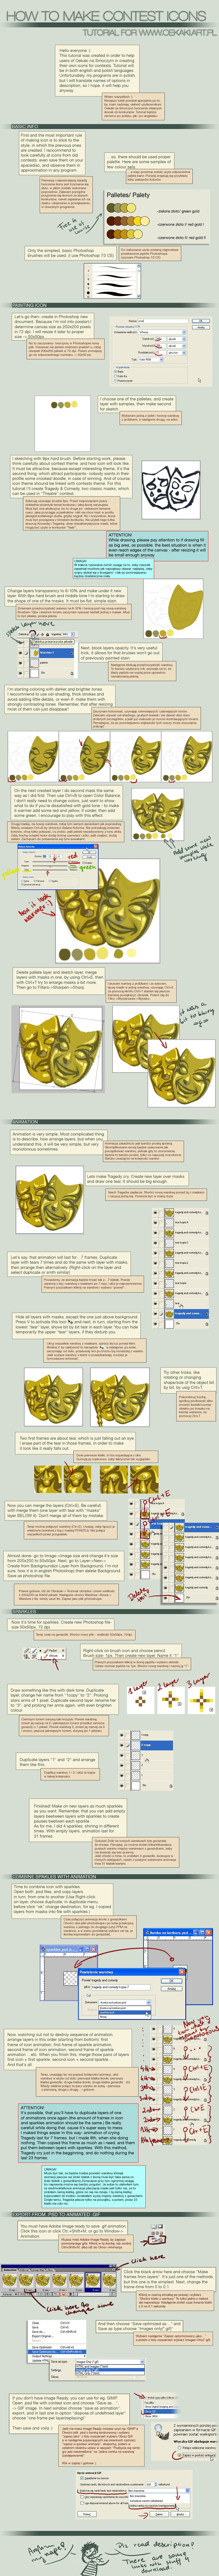 Animated Gold Icon tutorial